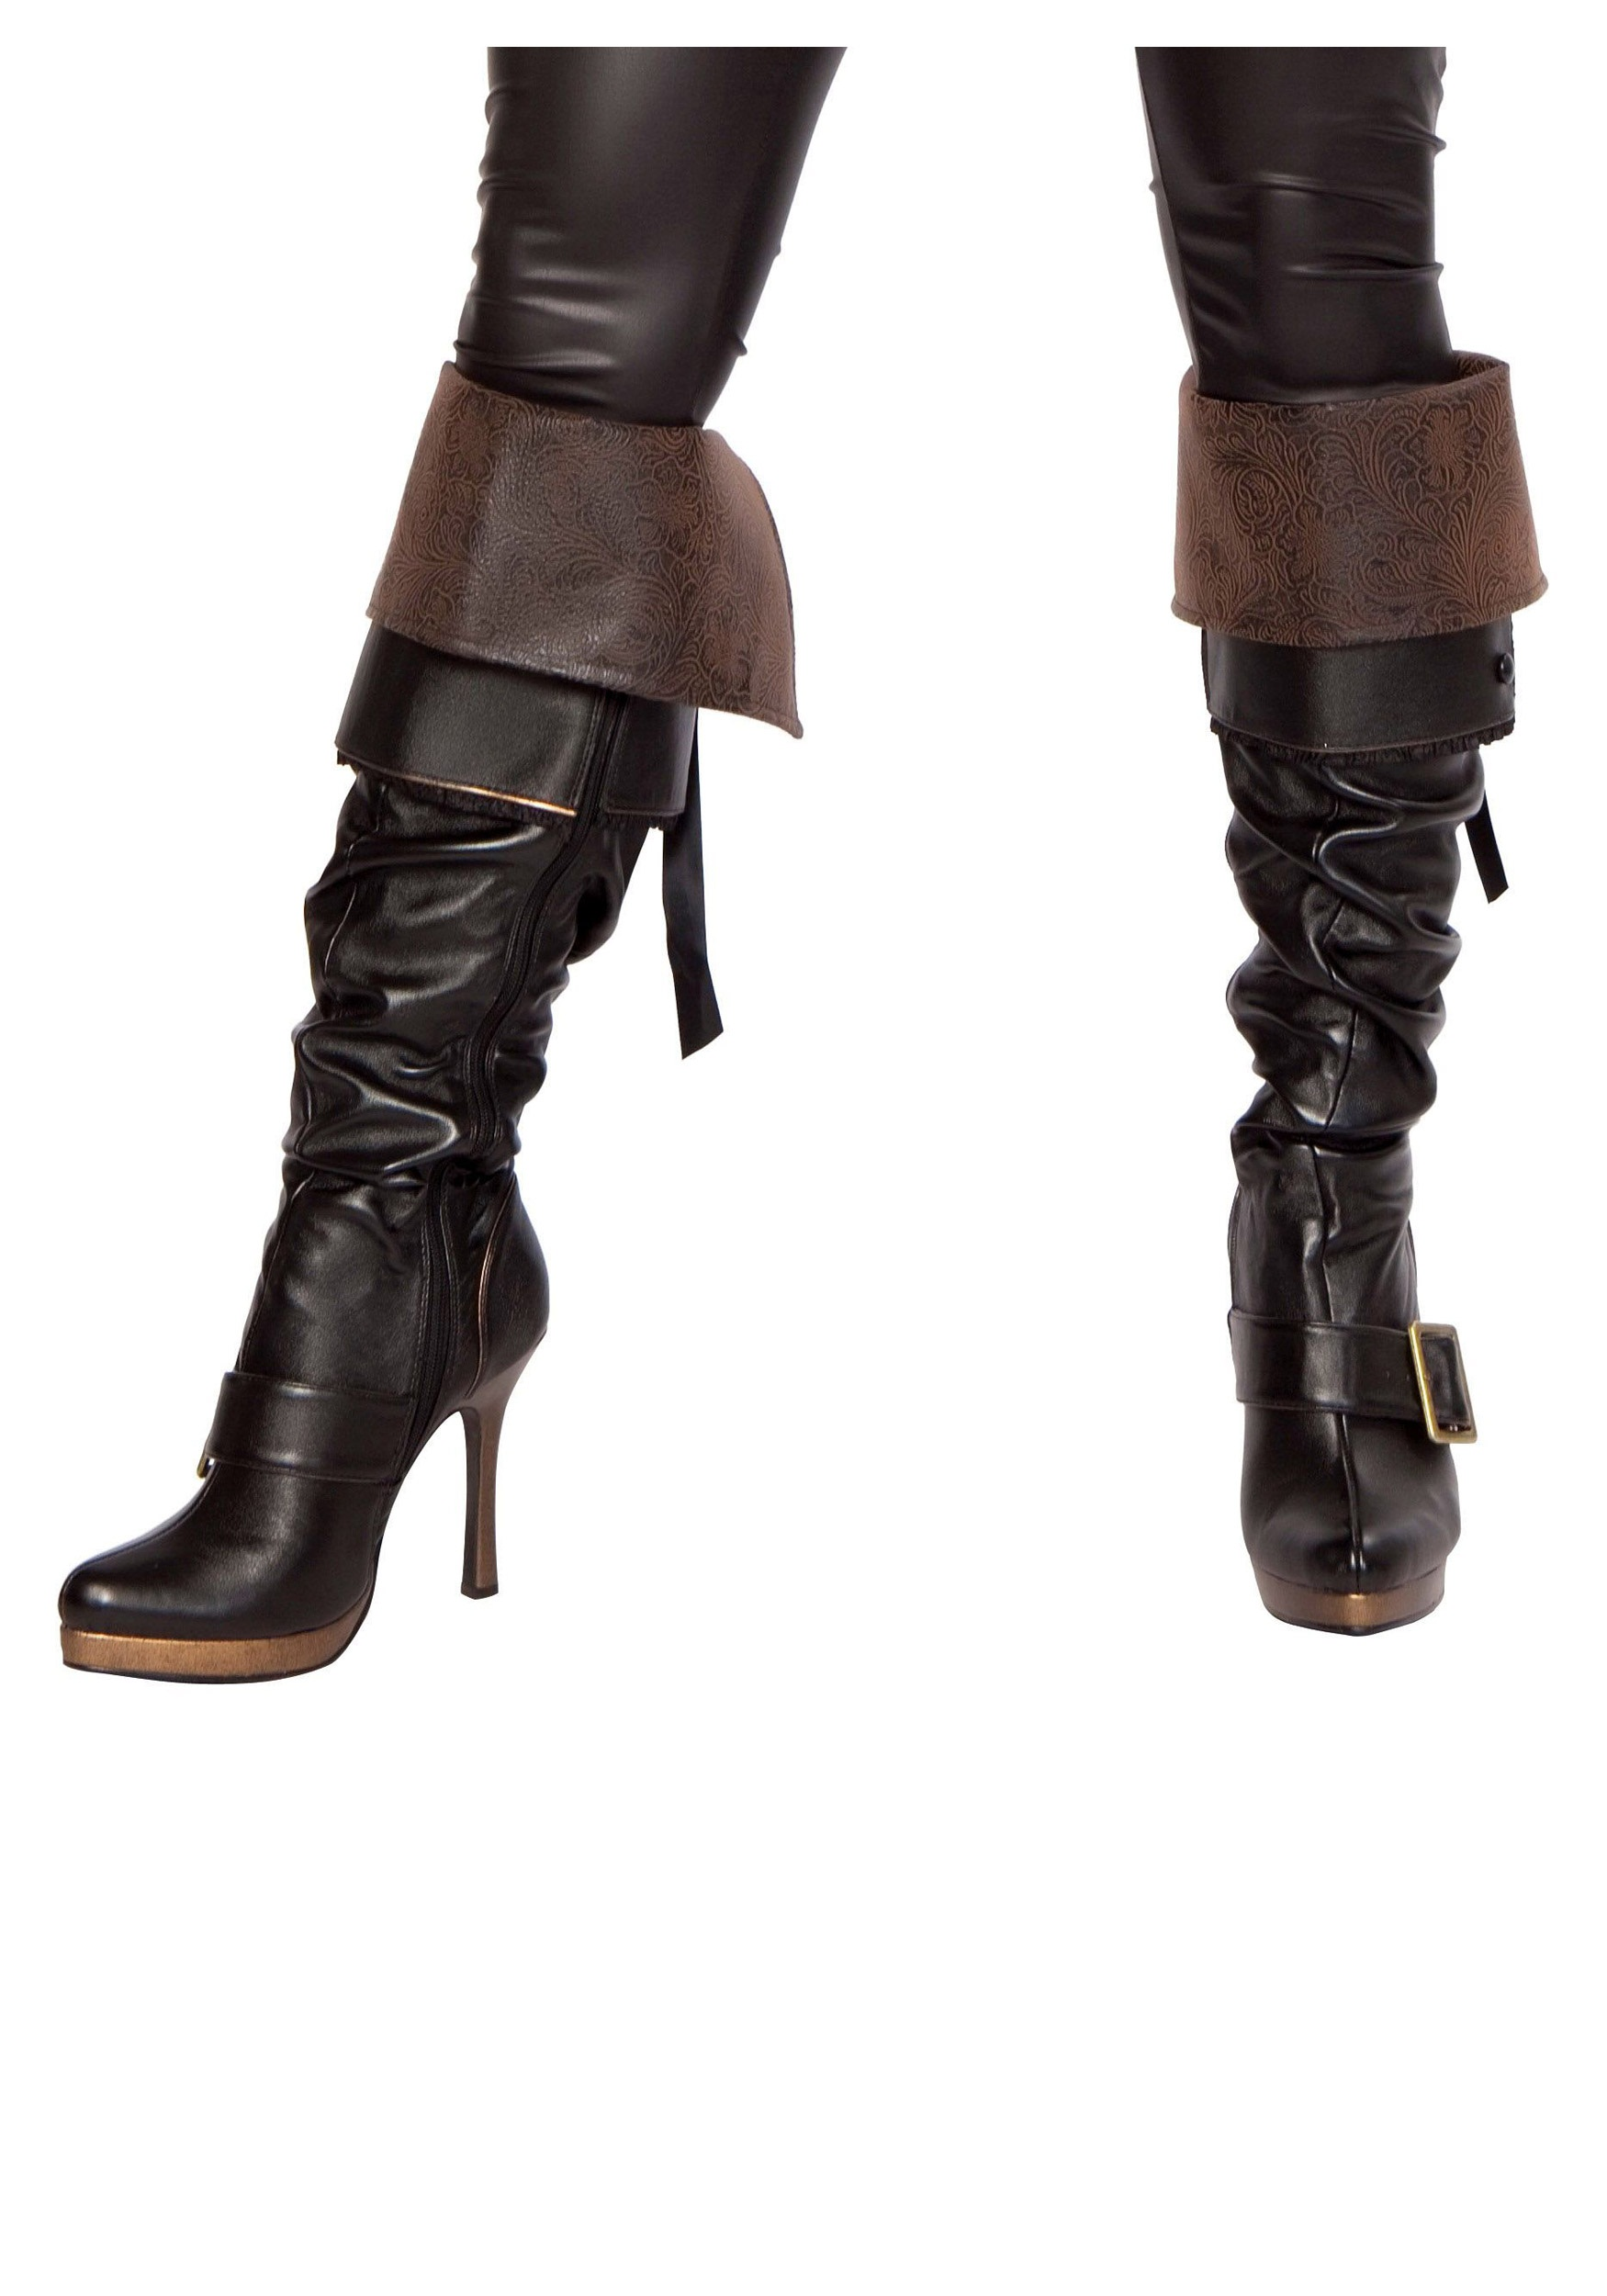 New Select The Fabric For The Book Cuffs Mens Pirate Boots Look Best With Black Leather, Vinyl Or Felt, While Women Pirates Can Add Colorful, Fancy Satin Or Silk Cuffs To Dress Up The Tops Of The Boots Measure Around The Top Of The Boot And Add 2